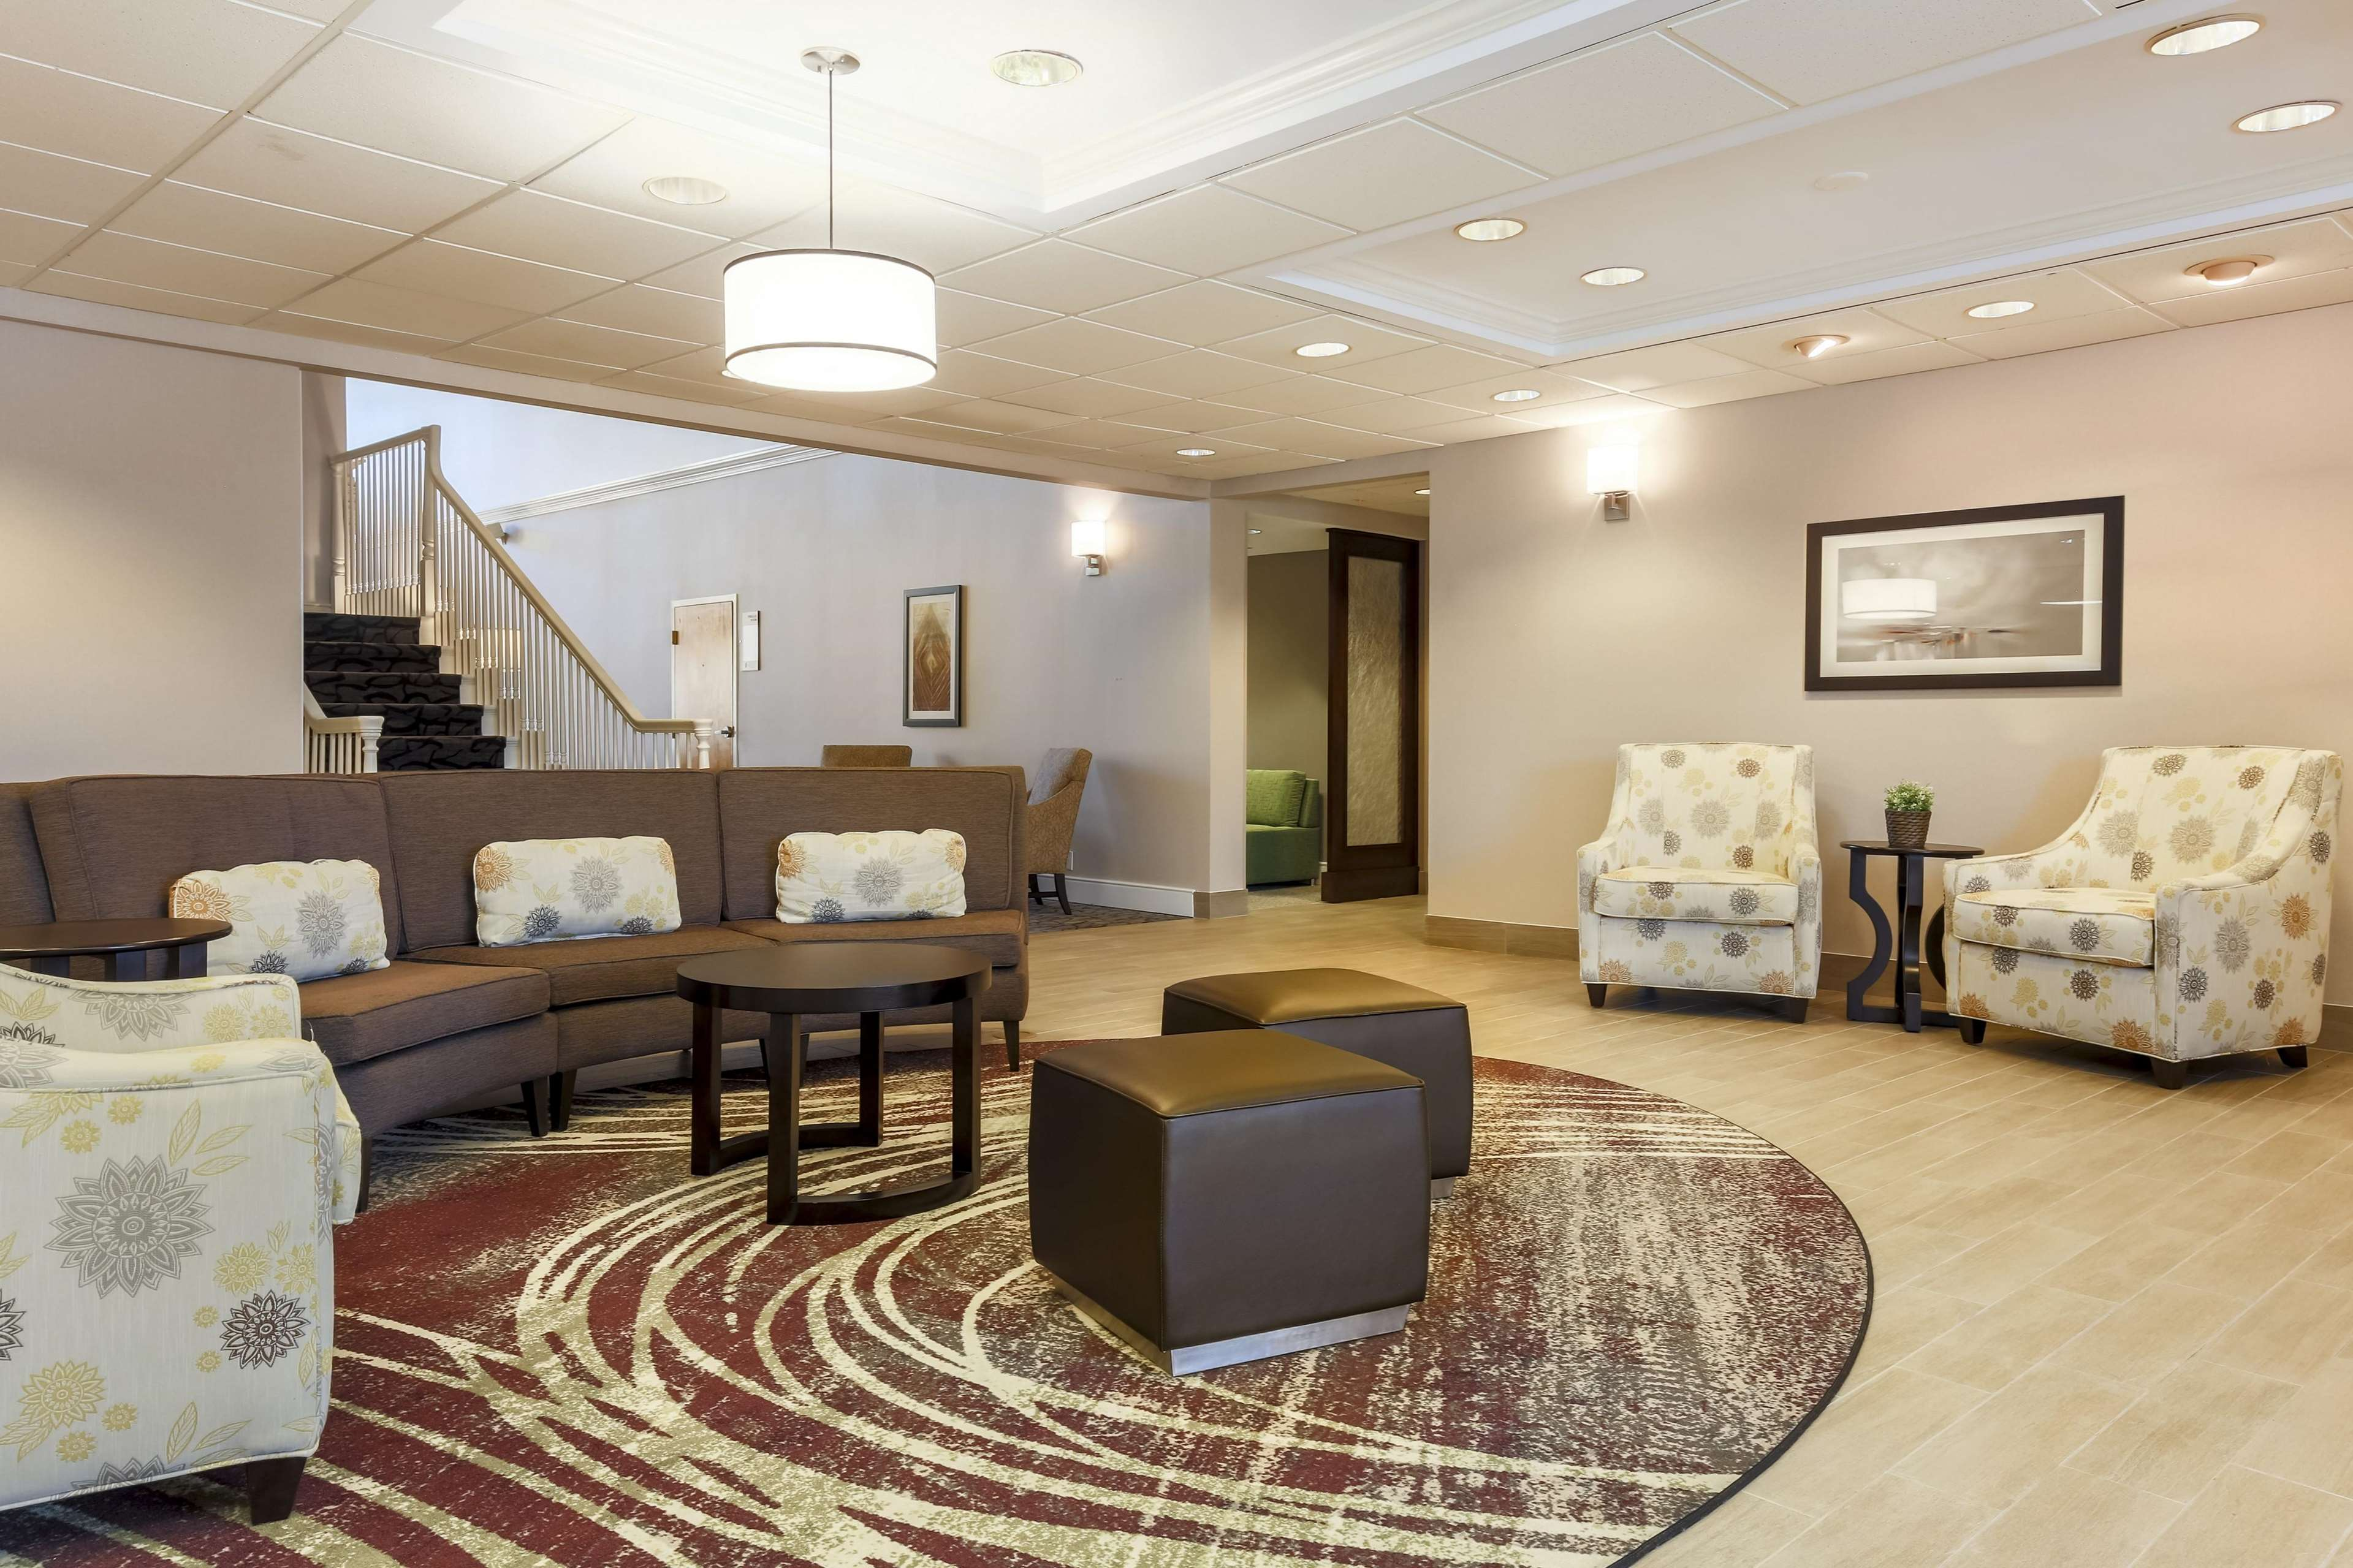 Homewood Suites by Hilton St. Petersburg Clearwater image 6